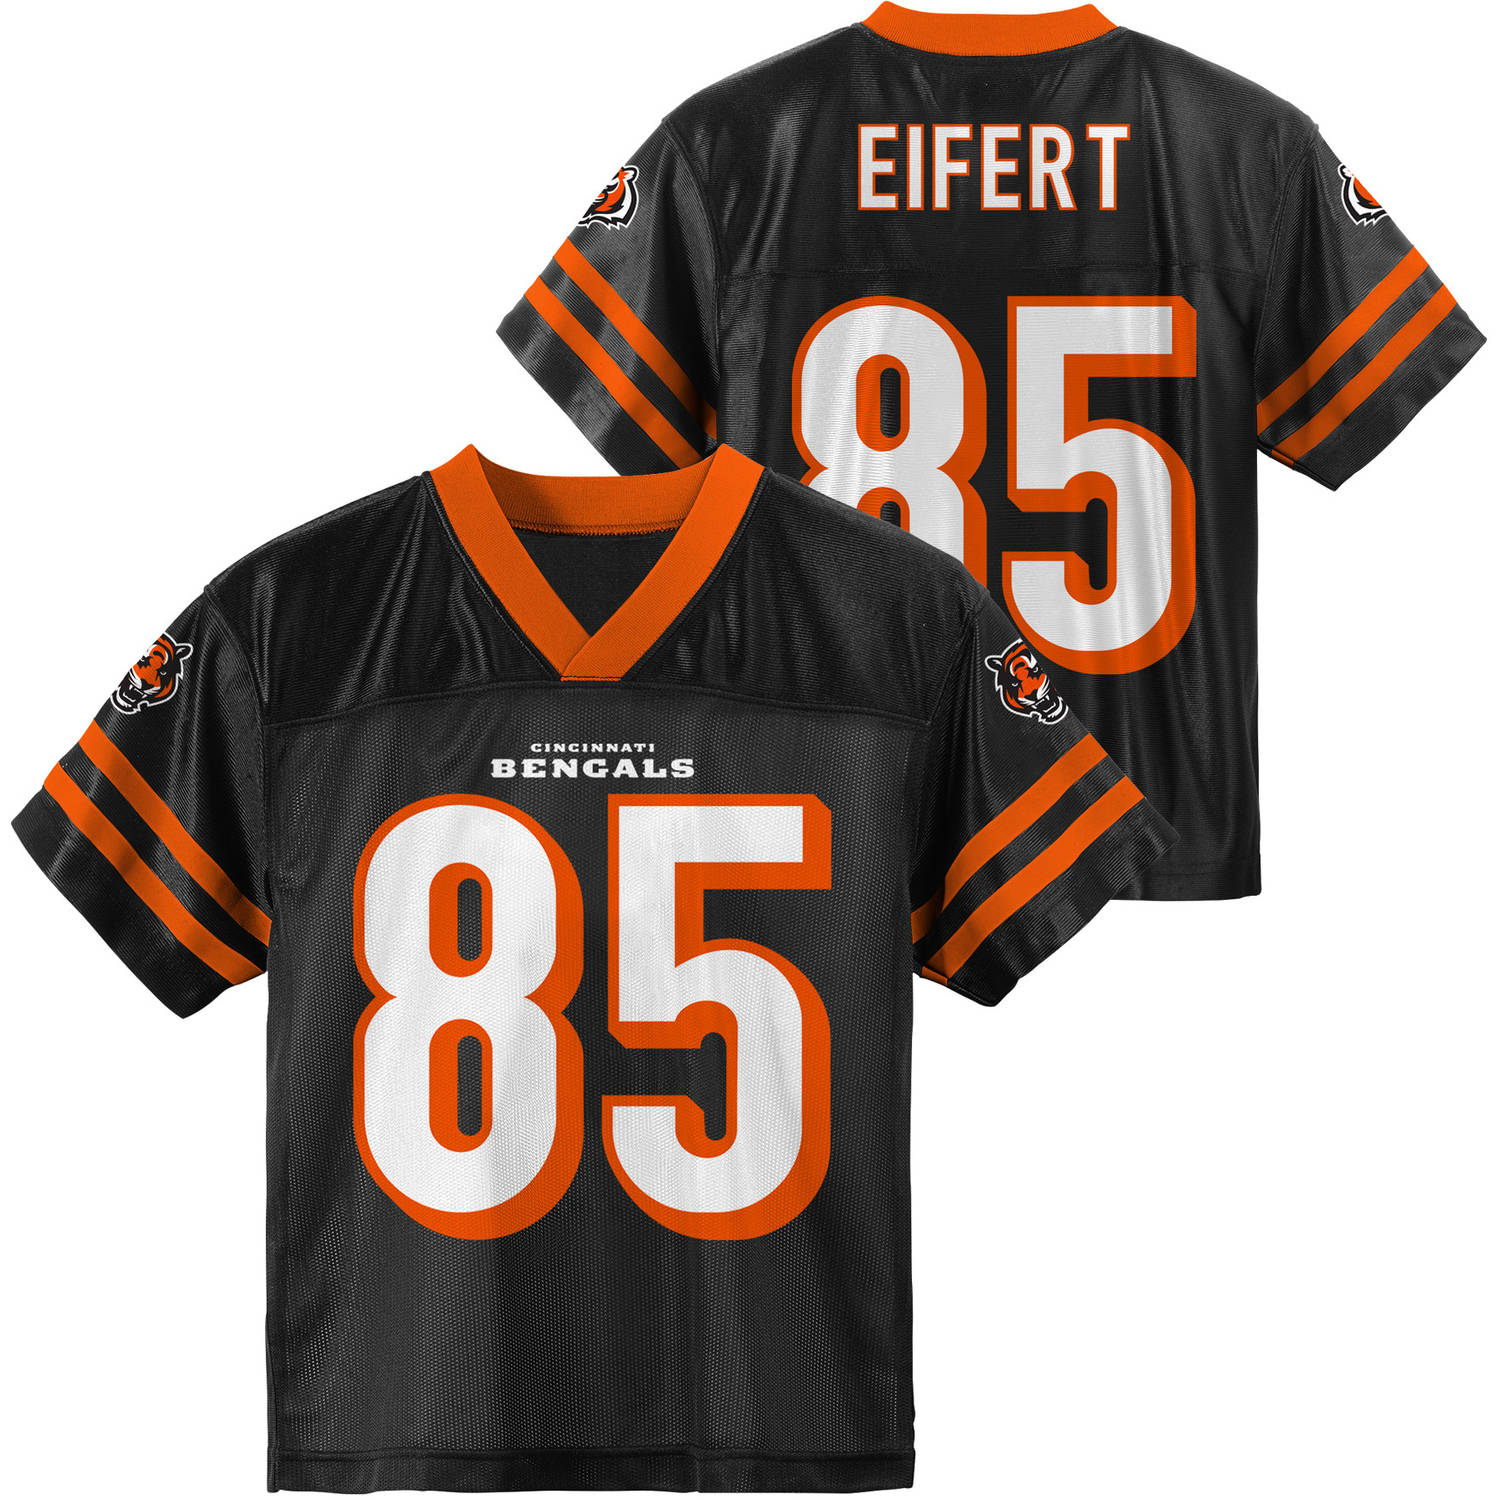 NFL, Player: T Eifert, Cincinnati Bengals, YOUTH Player Jersey, Size 4(XS) - 18(XXL), Team Color with Number